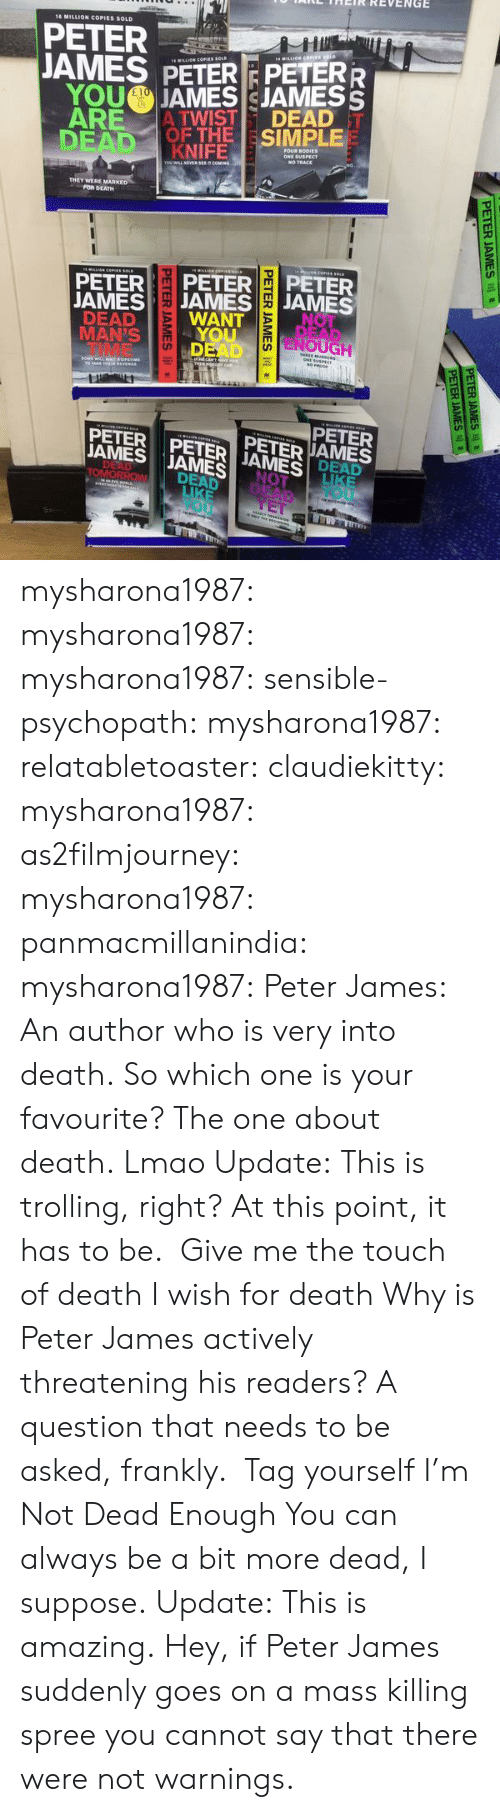 tag yourself: ais HaIR REVENGE  18 MILLION COPIES SOLD  PETER  JAMES PETERPETERR  YOU  JAMES I JAMES S  DEAN, OFTHE | SIMPLE  KNIFE  THEY WERE MARKED  FOR DEATH  PETER PETERPETER  AMESJAMESJAMES  TE  DEAD  WANTNO  MAN'S  TIME  NOUGH  DEAD  PETER  PETER PETERIJAMESİ ME  JAMES JAMES  PETER JAMES  DEAD mysharona1987:  mysharona1987:  mysharona1987:  sensible-psychopath:  mysharona1987:  relatabletoaster:  claudiekitty:   mysharona1987:   as2filmjourney:  mysharona1987:  panmacmillanindia:  mysharona1987:  Peter James: An author who is very into death.  So which one is your favourite?  The one about death.  Lmao  Update: This is trolling, right? At this point, it has to be.    Give me the touch of death   I wish for death  Why is Peter James actively threatening his readers? A question that needs to be asked, frankly.    Tag yourself I'm Not Dead Enough  You can always be a bit more dead, I suppose.  Update: This is amazing.  Hey, if Peter James suddenly goes on a mass killing spree you cannot say that there were not warnings.